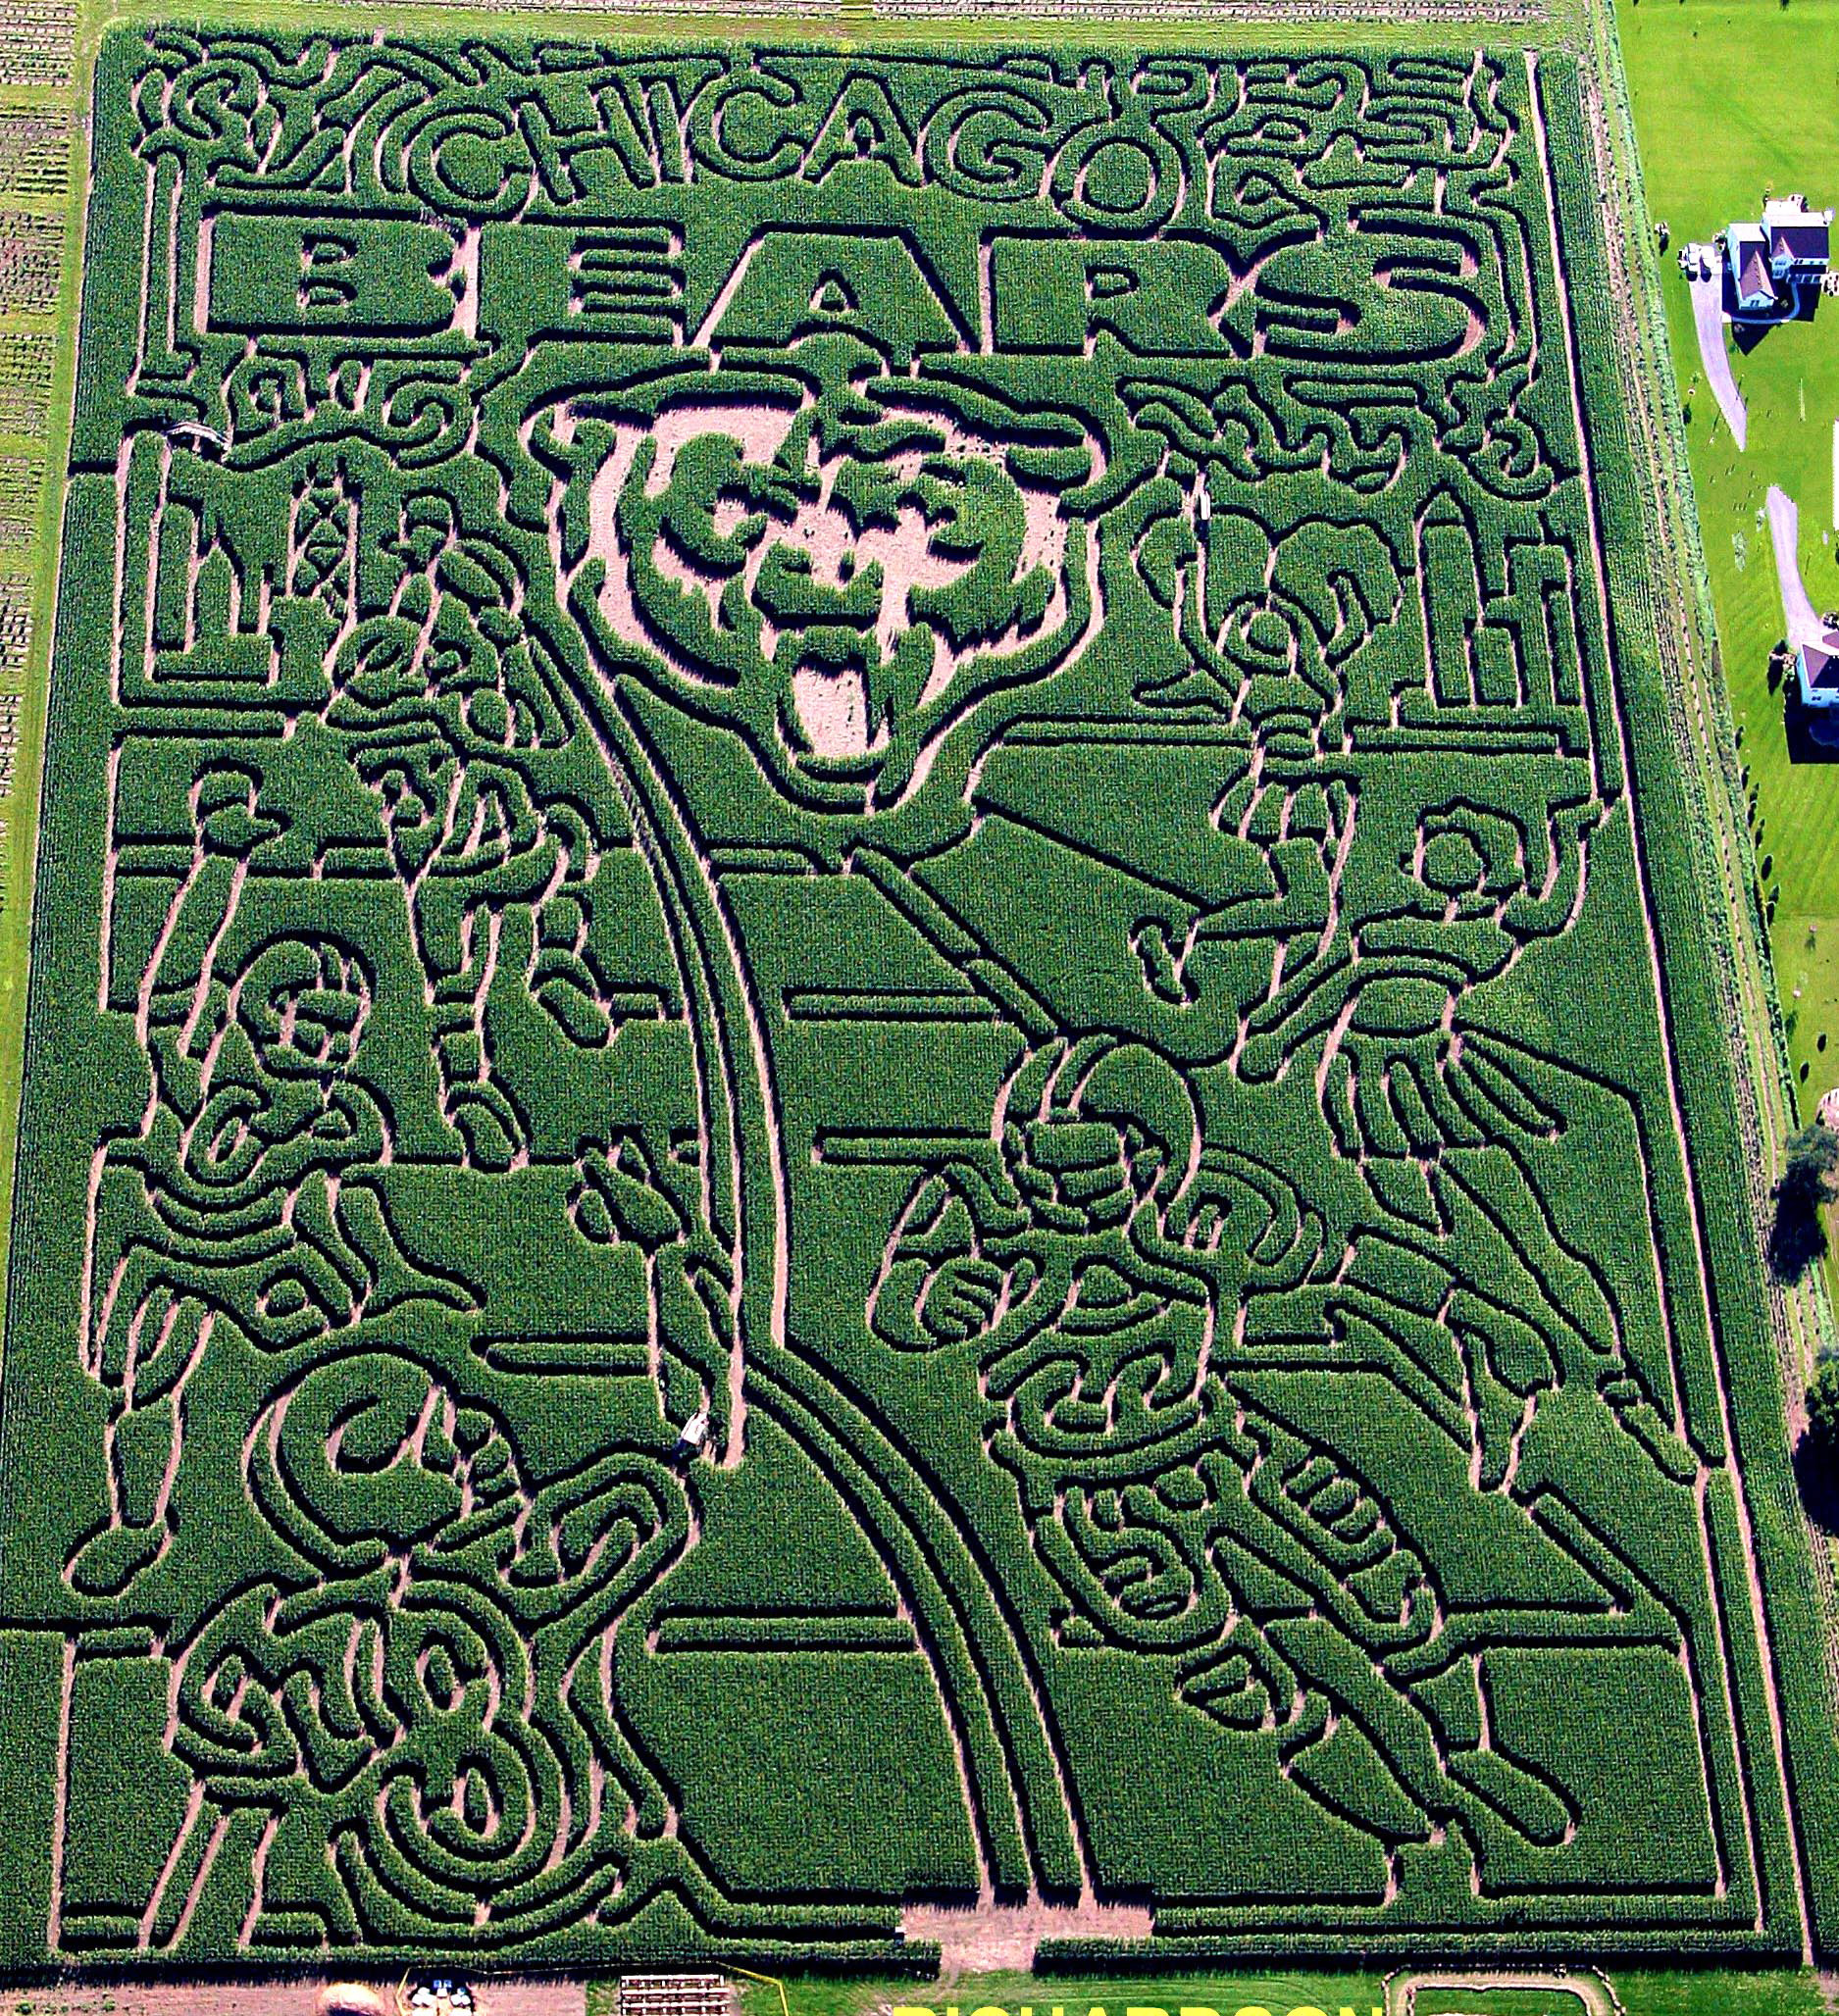 2007 Corn Maze - Chicago Bears